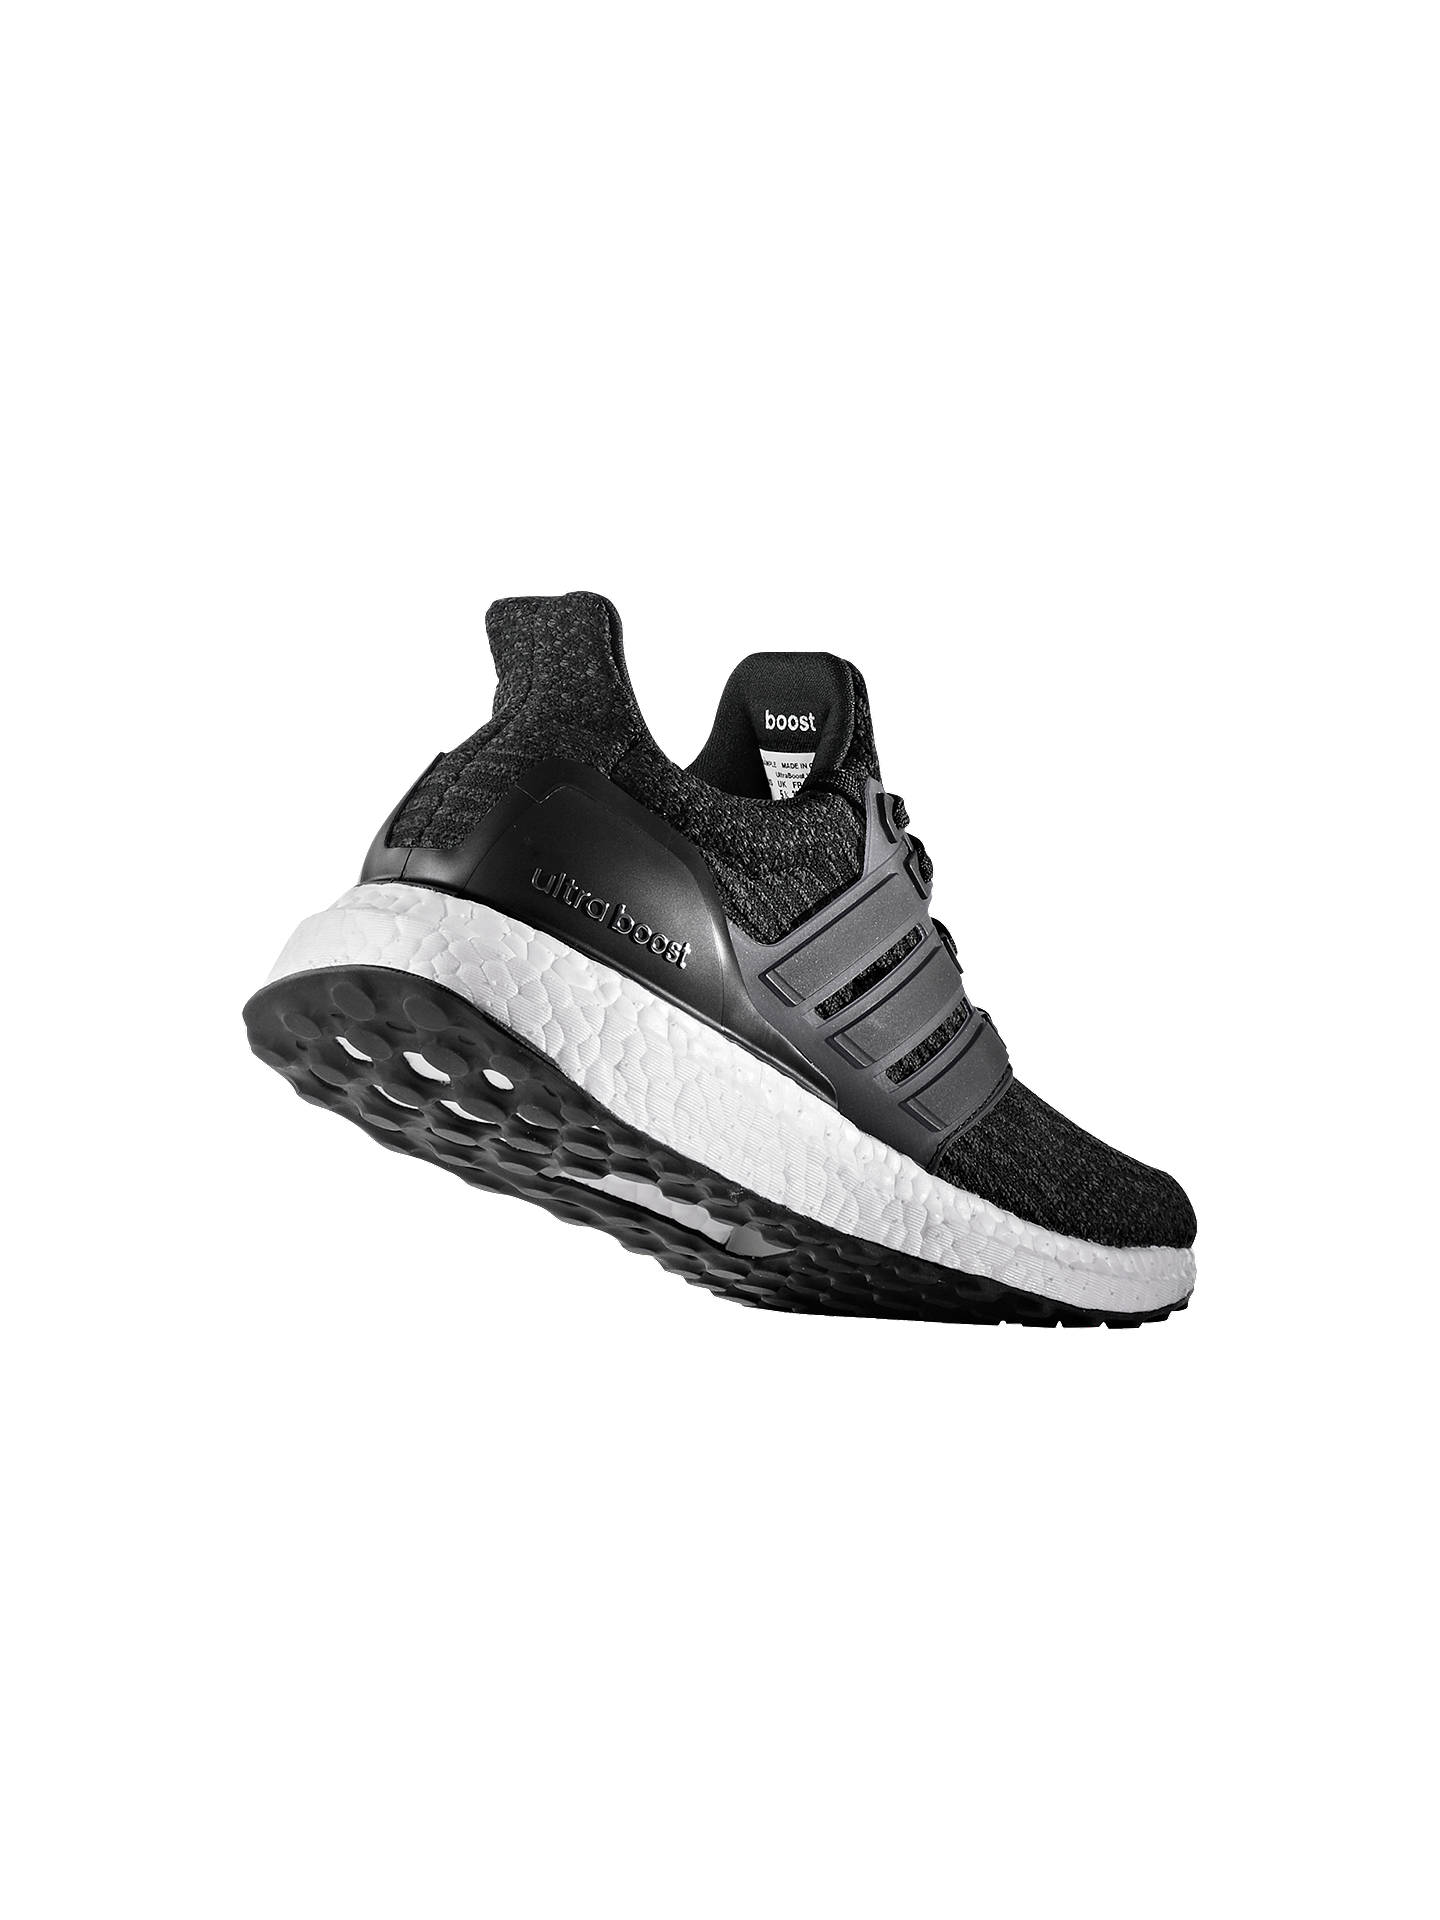 ... Buyadidas Ultra Boost Womens Running Shoes, Black, 4 Online at  johnlewis. ...